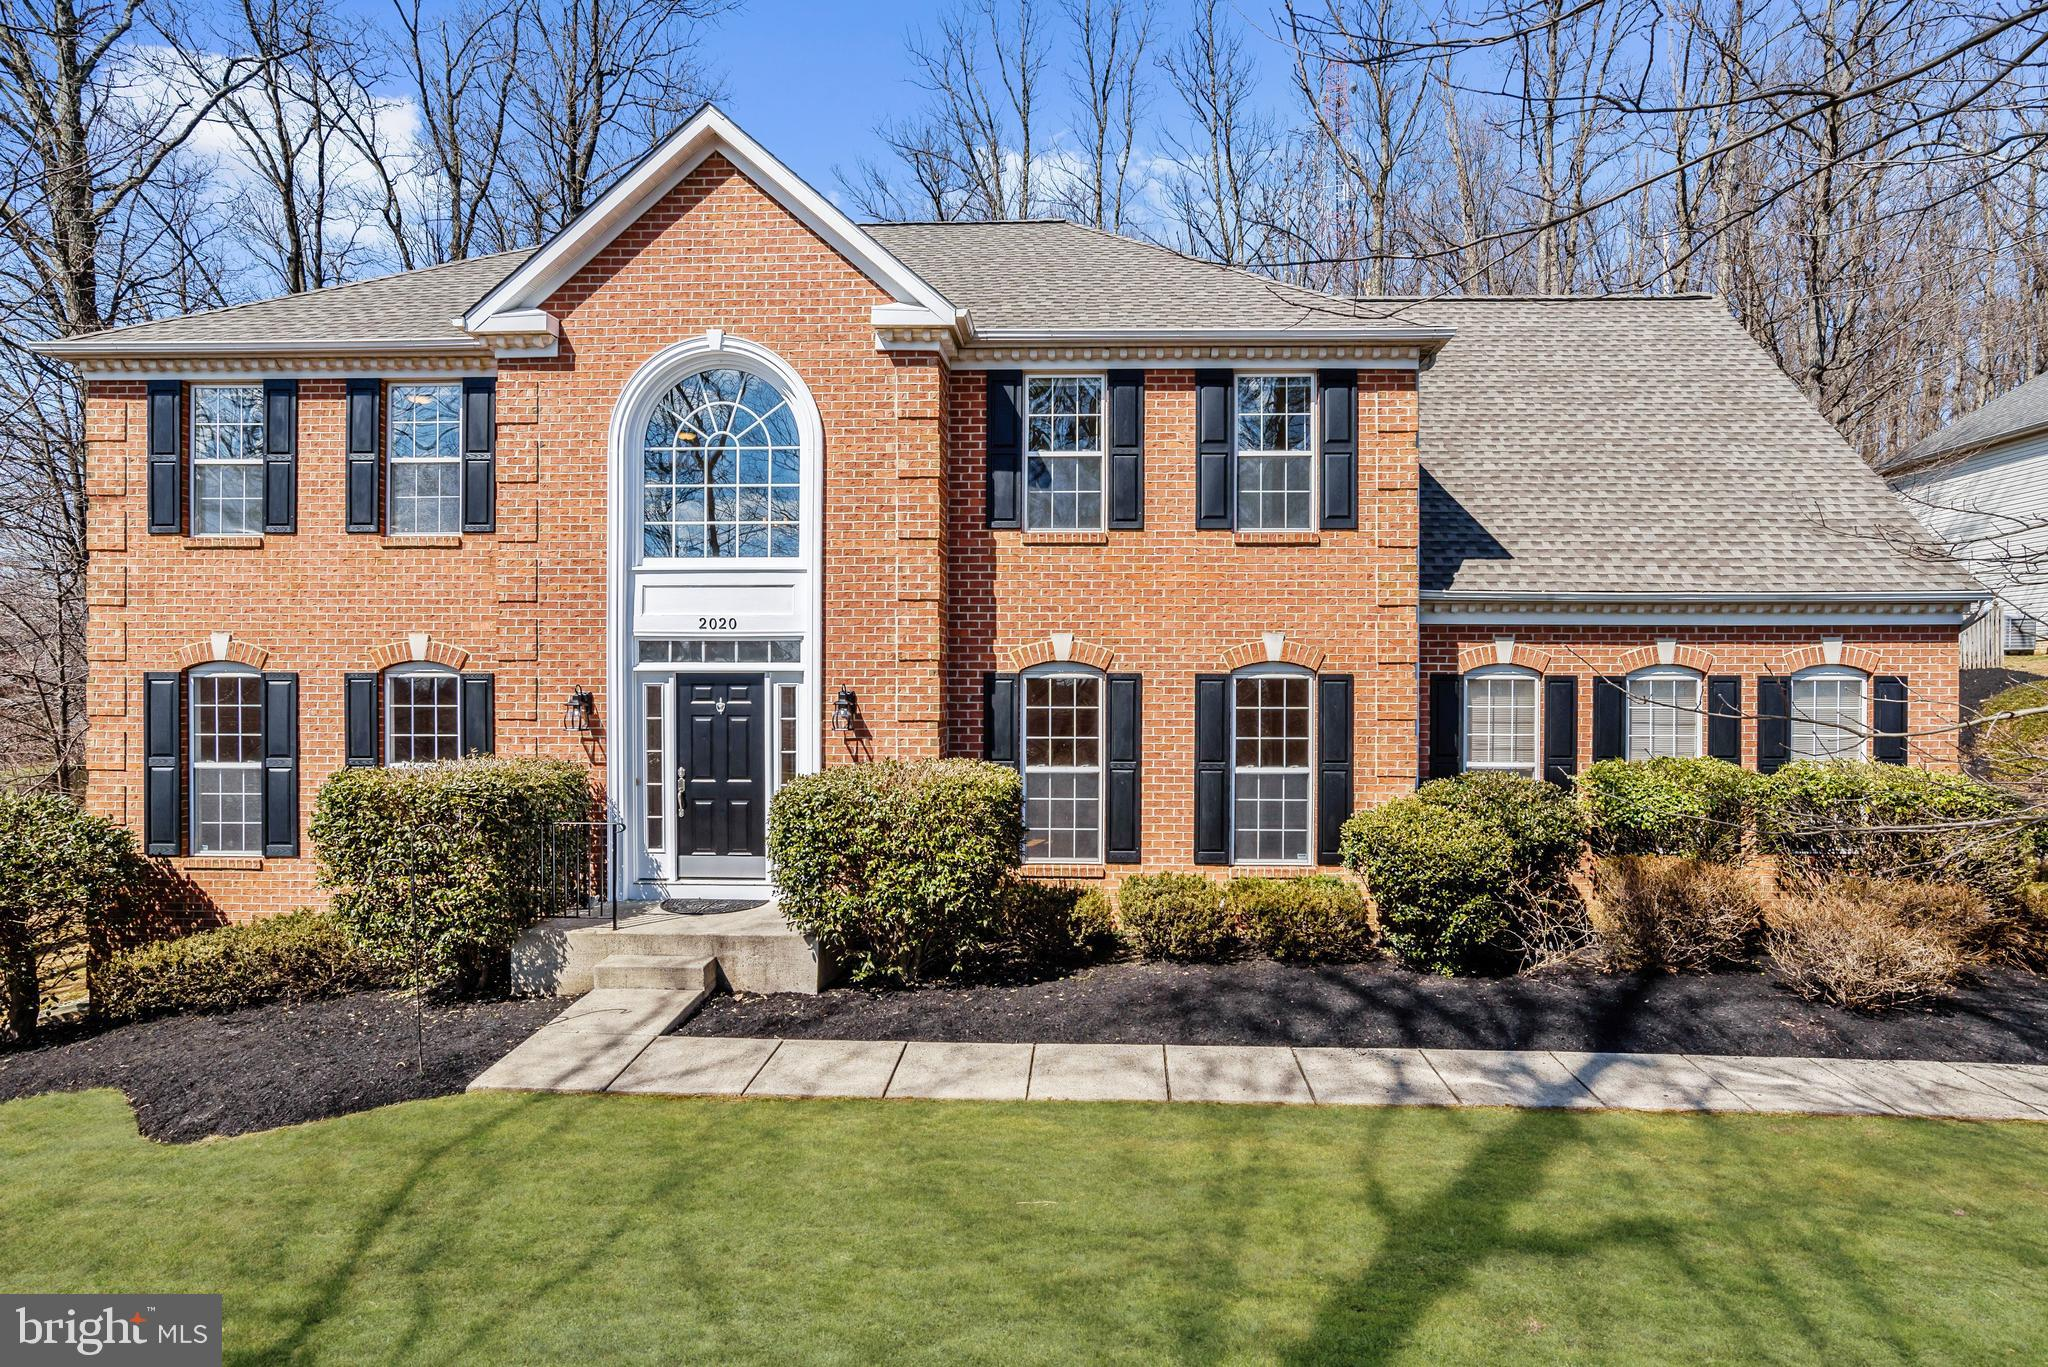 2020 MEADOW TREE COURT, COOKSVILLE, MD 21723